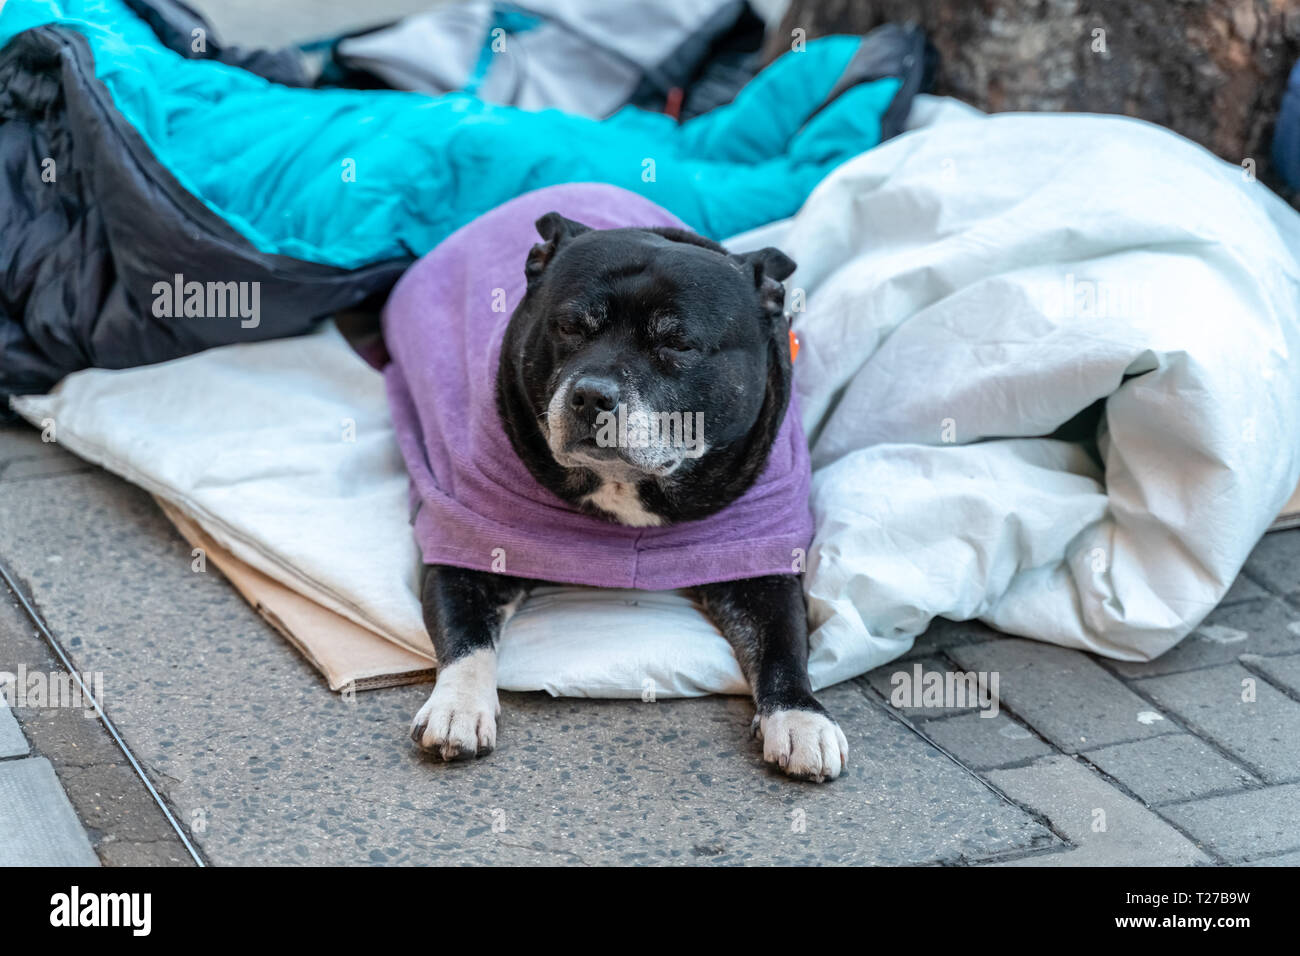 A hopeless dog lying alone and depressed on the street feeling anxious and lonely in sleeping bag and waiting for food. The concept of homelessness, u - Stock Image